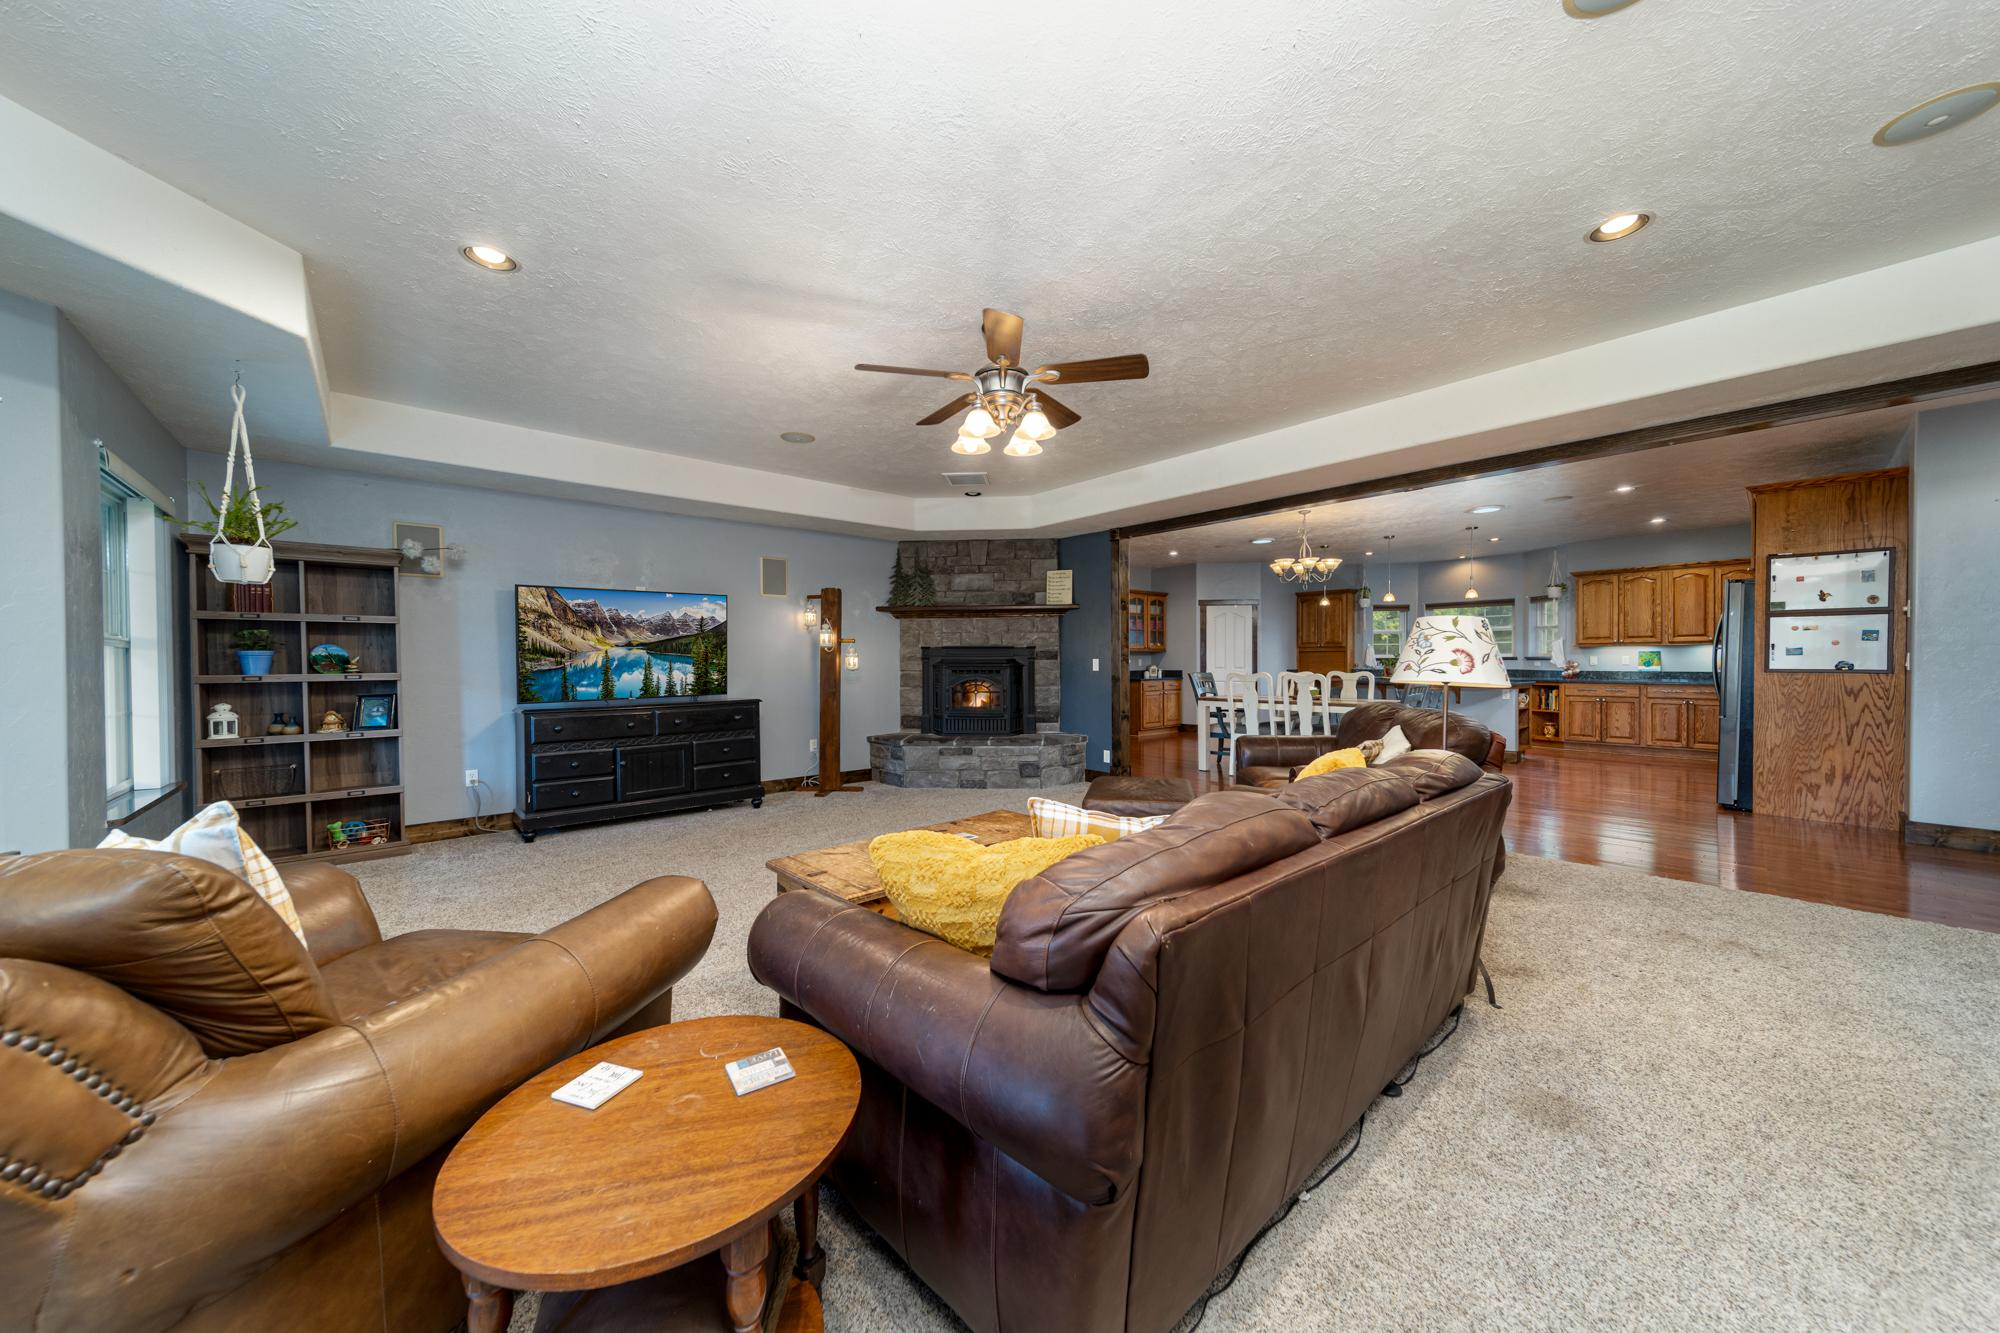 Living Room with Ceiling Fan - 12703 6100 Rd Montrose, CO 81403 - Atha Team Country Real Estate